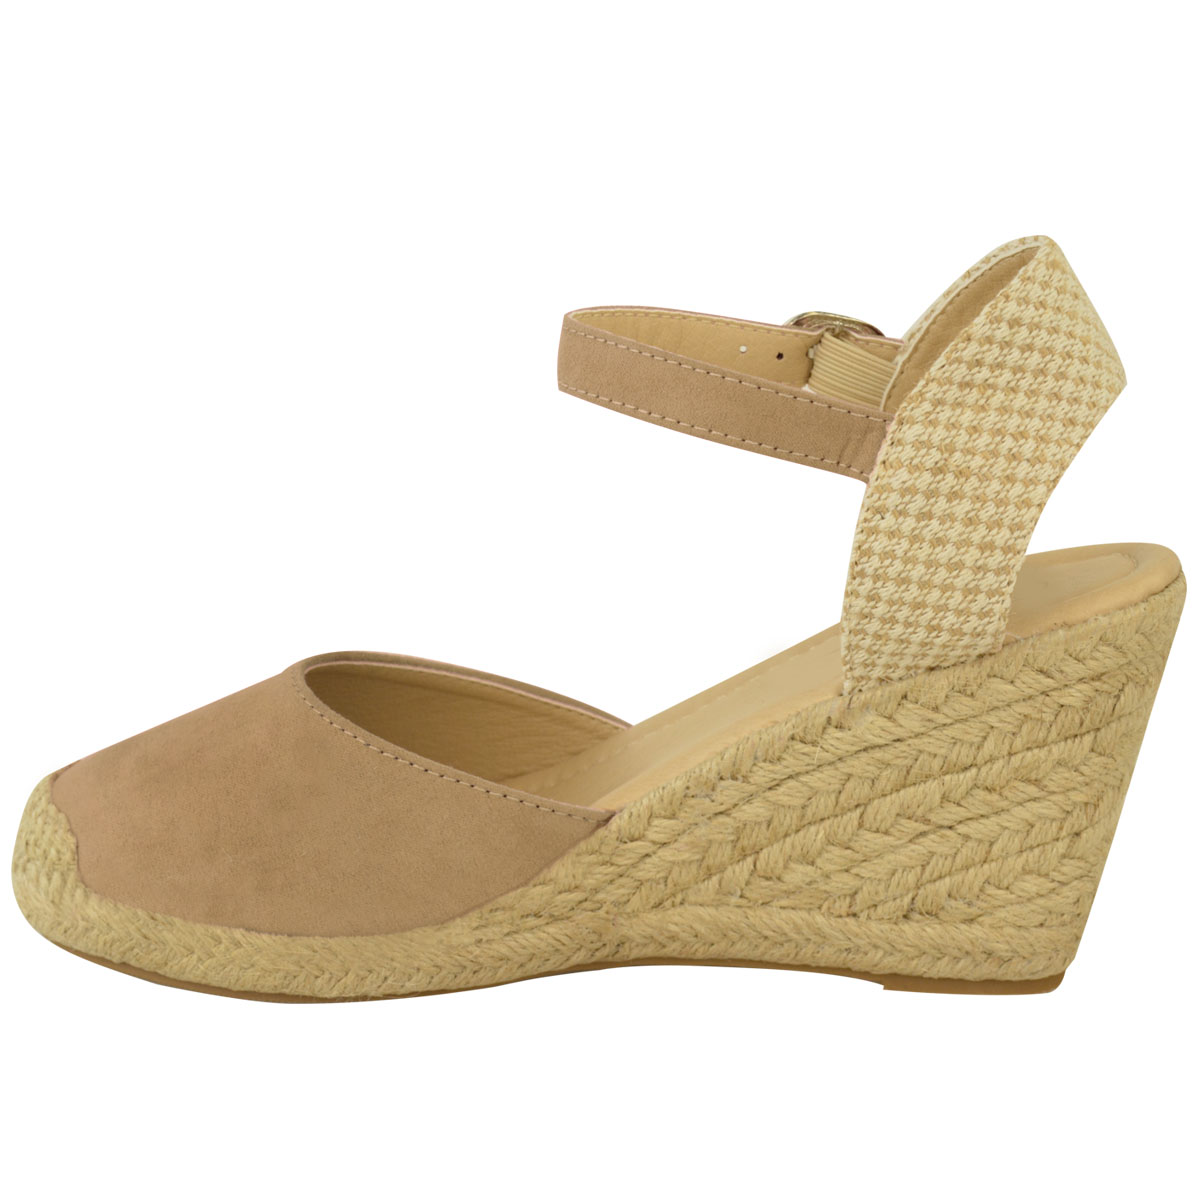 Unisex Breathable Canvas Shoes Slip-on Espadrilles Loafers Flats Shoes for Women Men (US Size ) from $ 9 98 Prime. out of 5 stars Syktkmx. Womens Espadrille Platform Wedge Heel Peep Toe Ankle Strap Slingback Suede Sandals. from $ 24 88 Prime. out of 5 stars Sam Edelman.